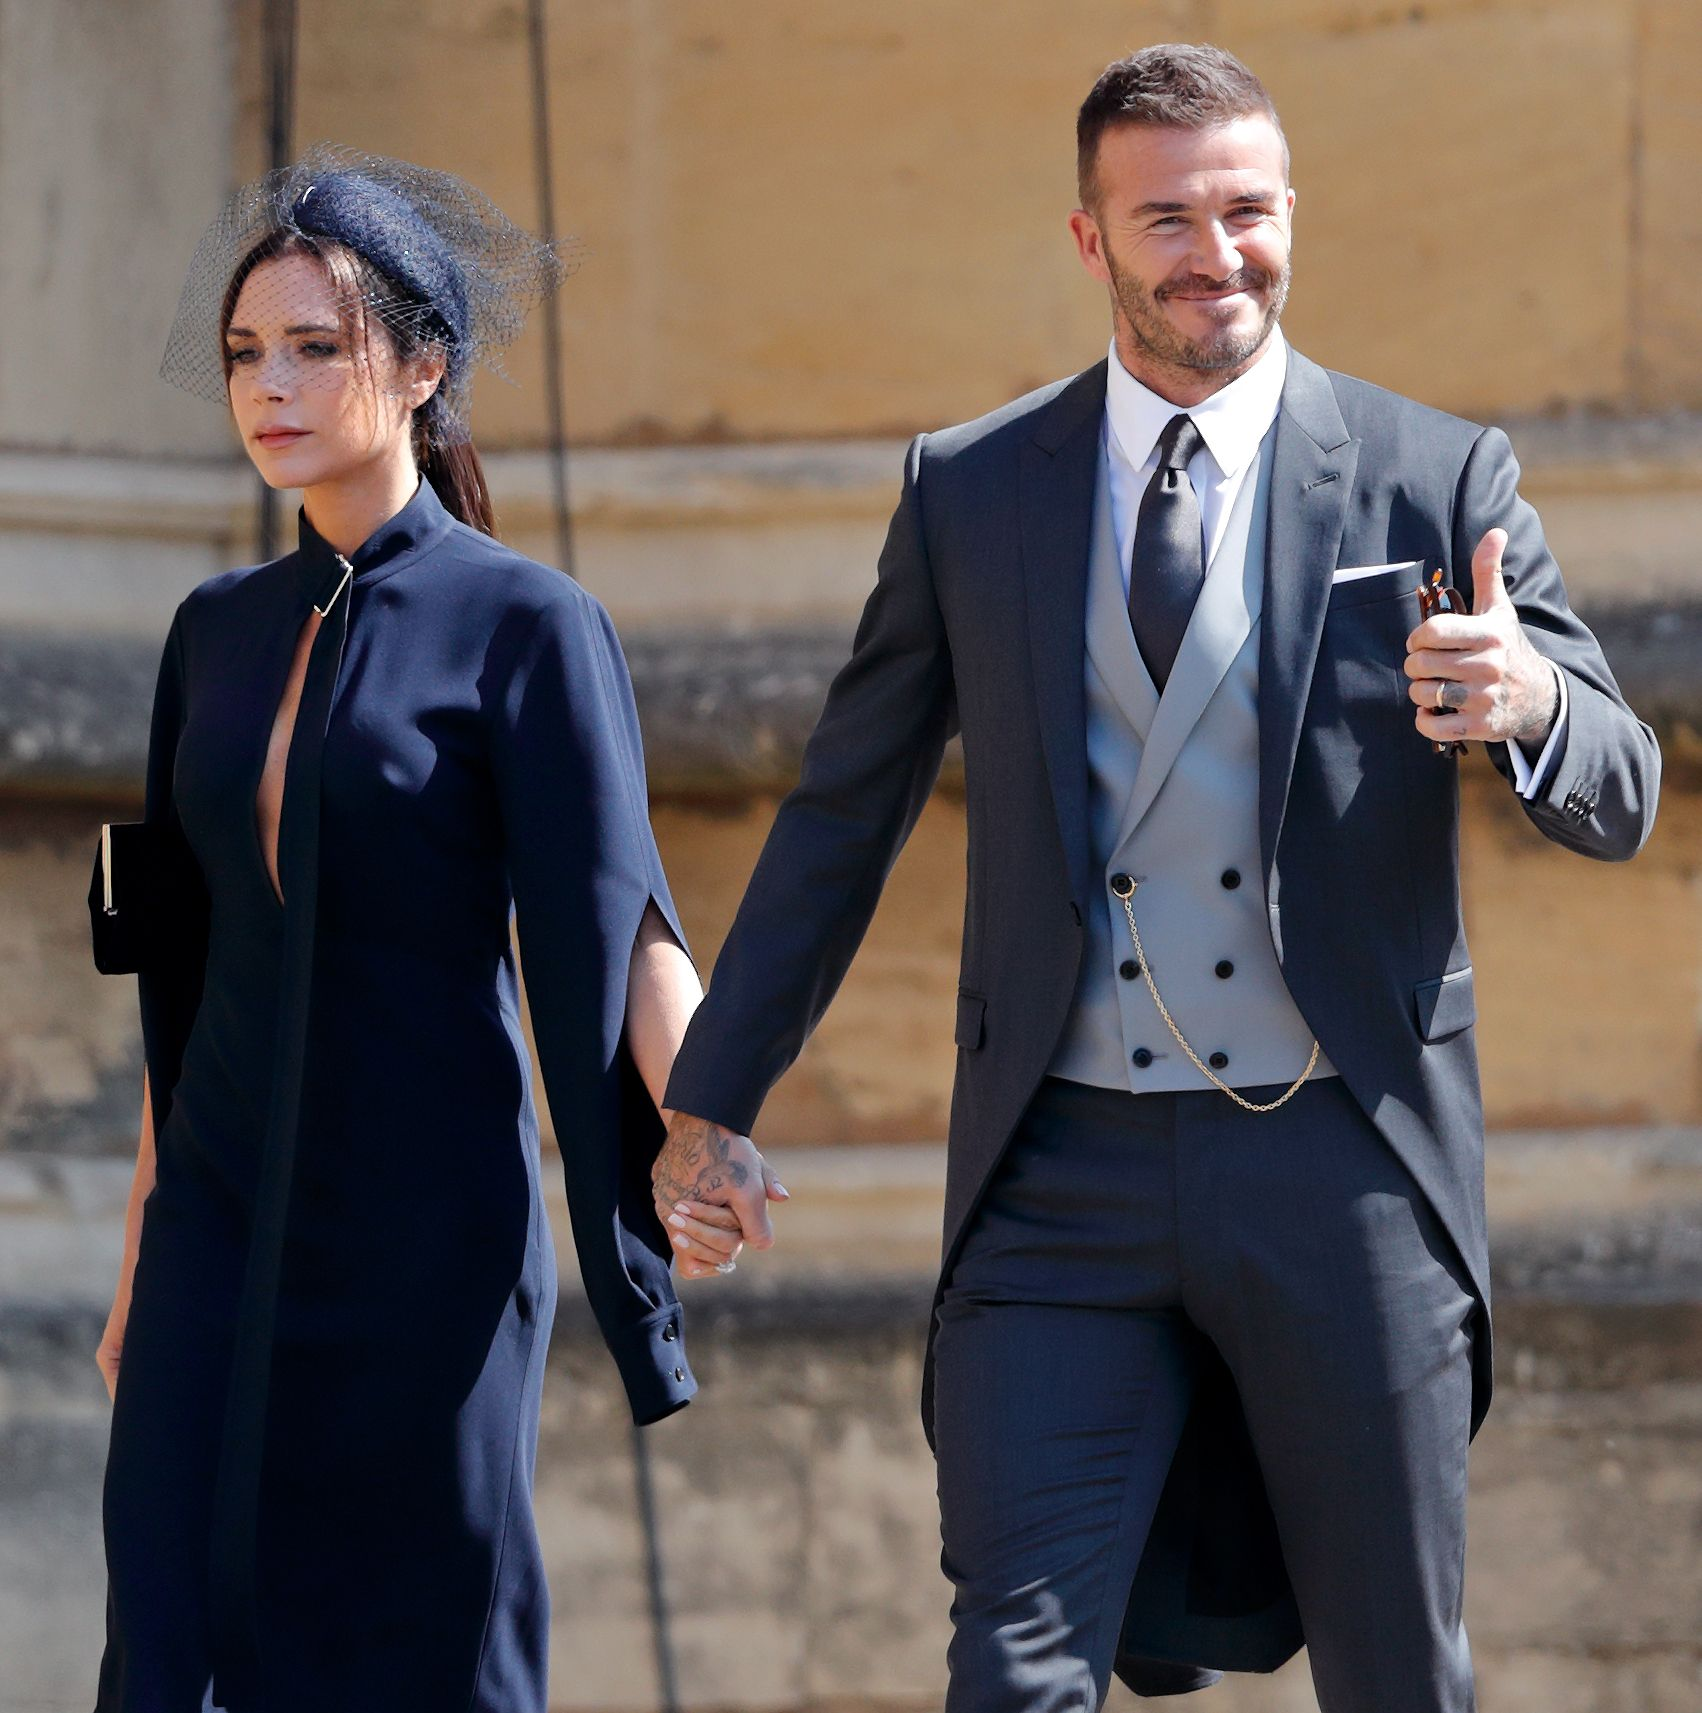 Victoria Beckham Responds To Criticism Over Not Smiling At